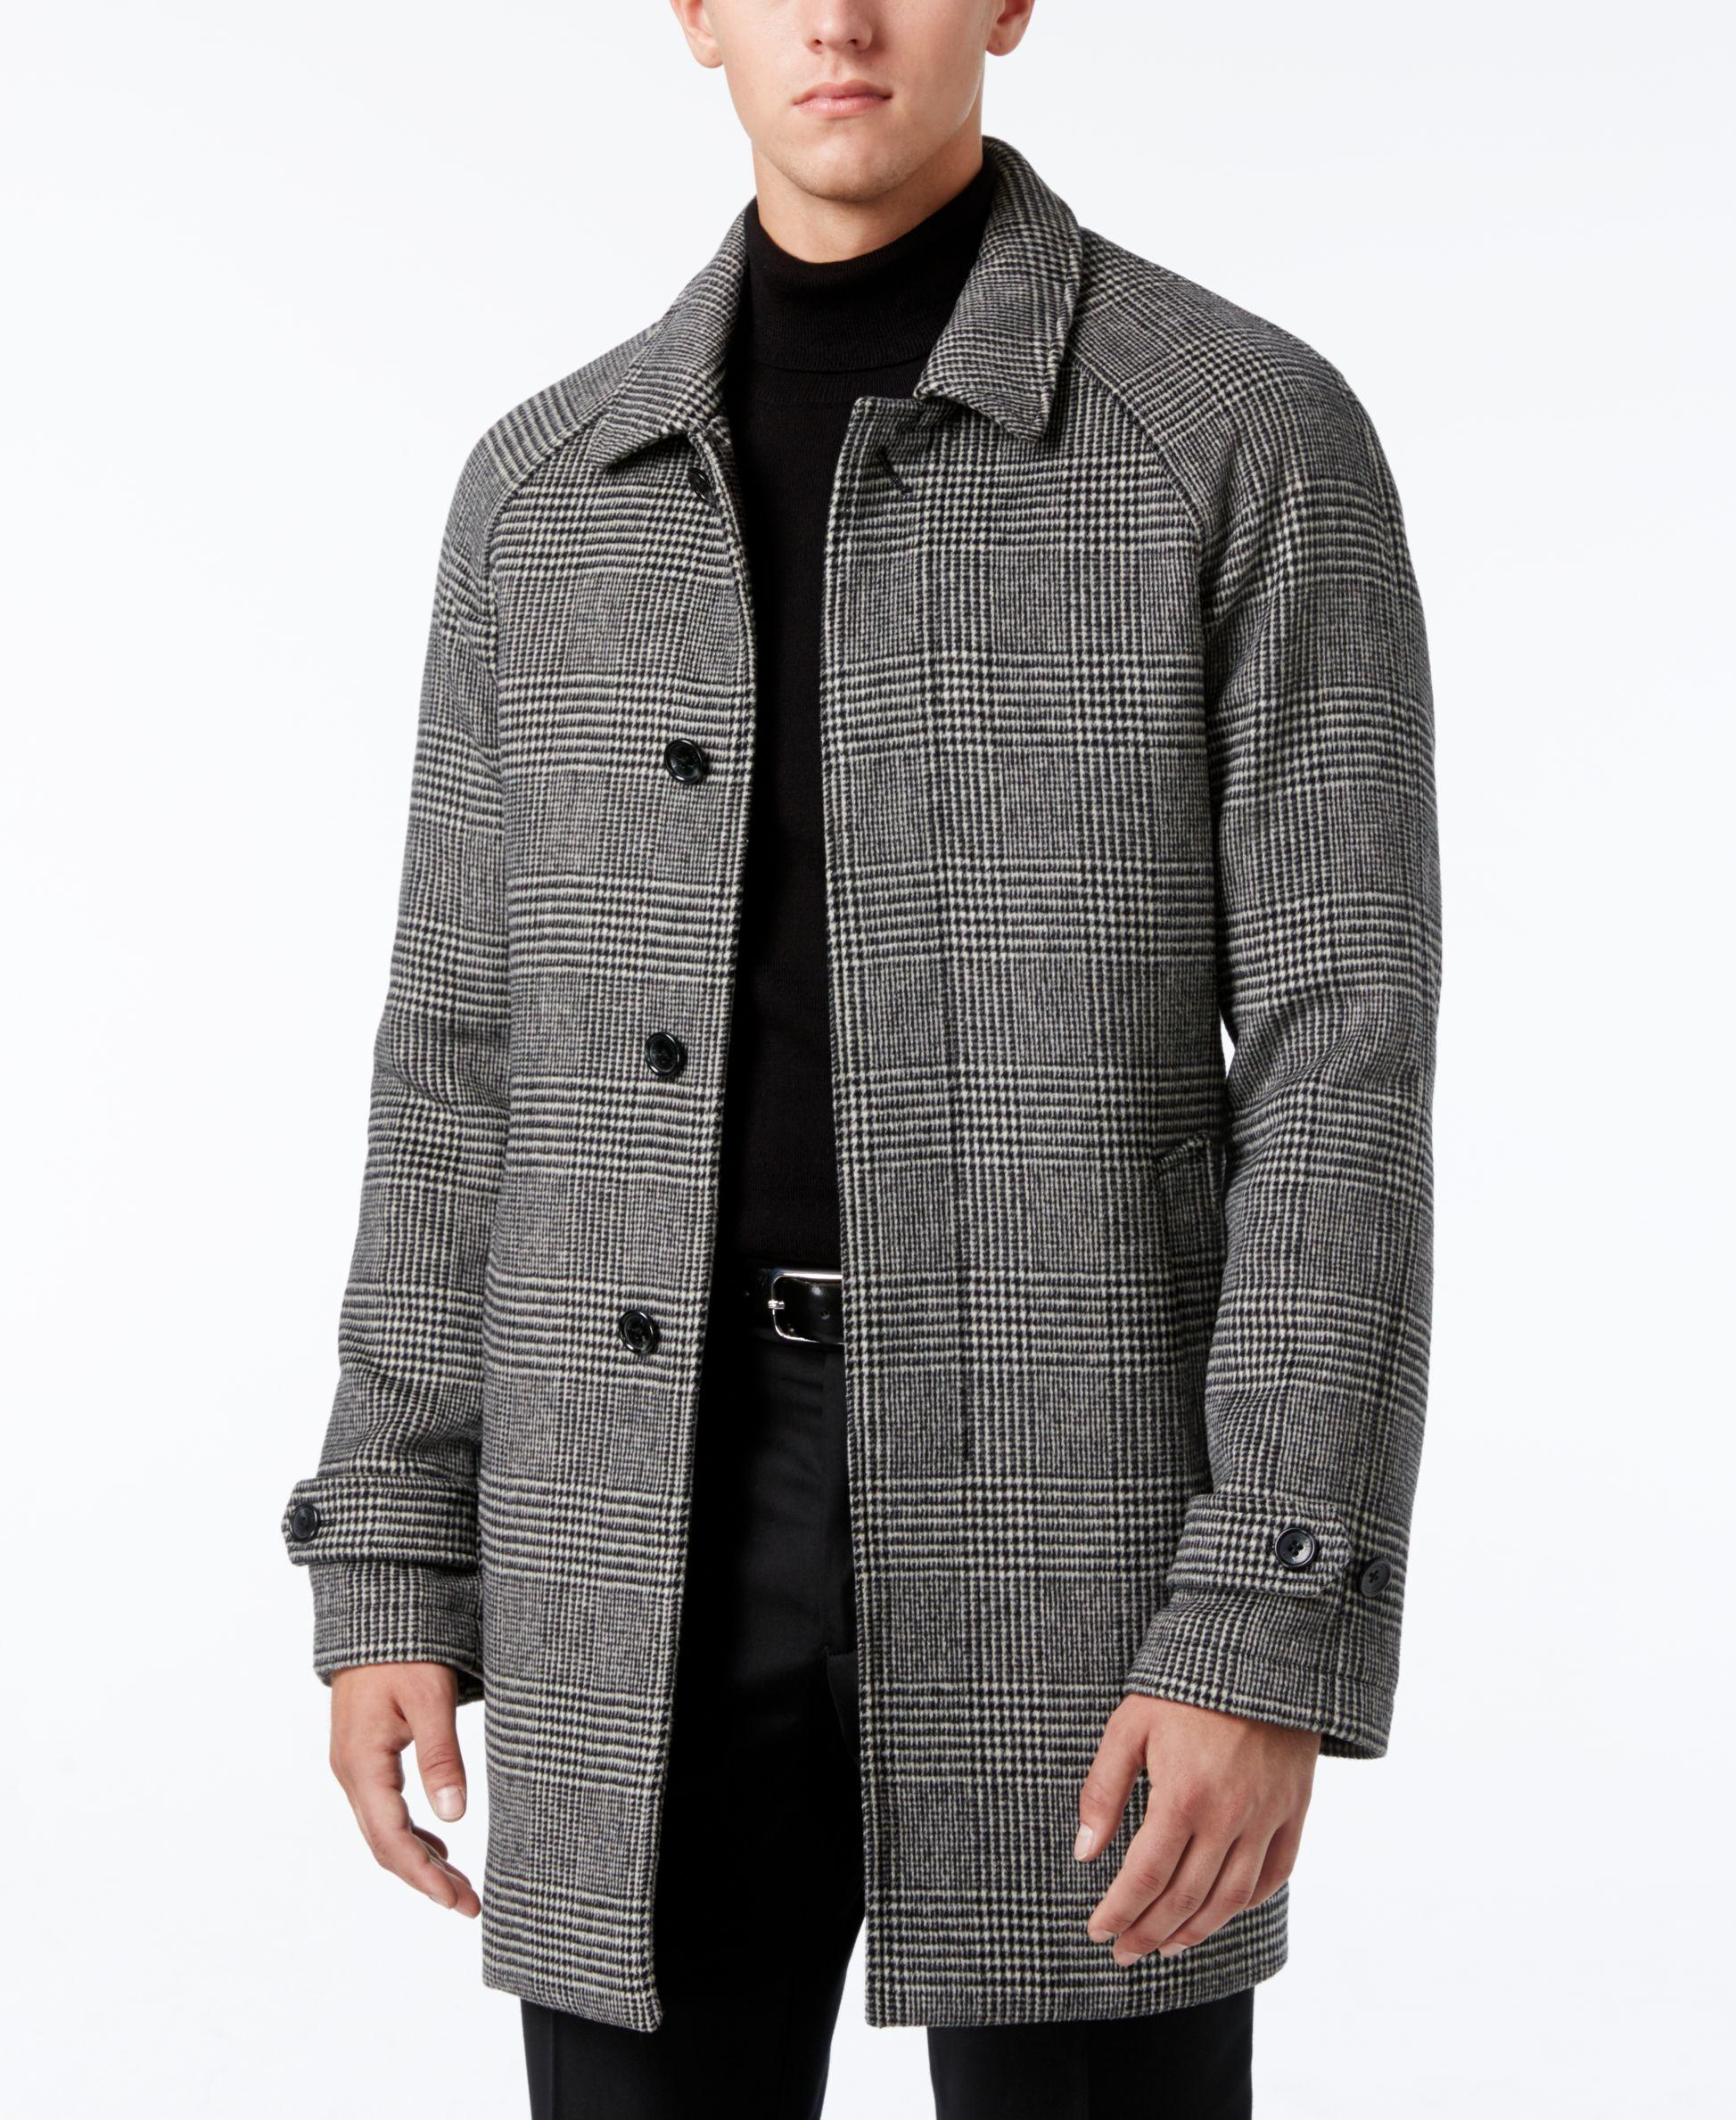 New Lyst - Michael Kors Men's Slim-fit Glen Plaid Overcoat in Black  UT64